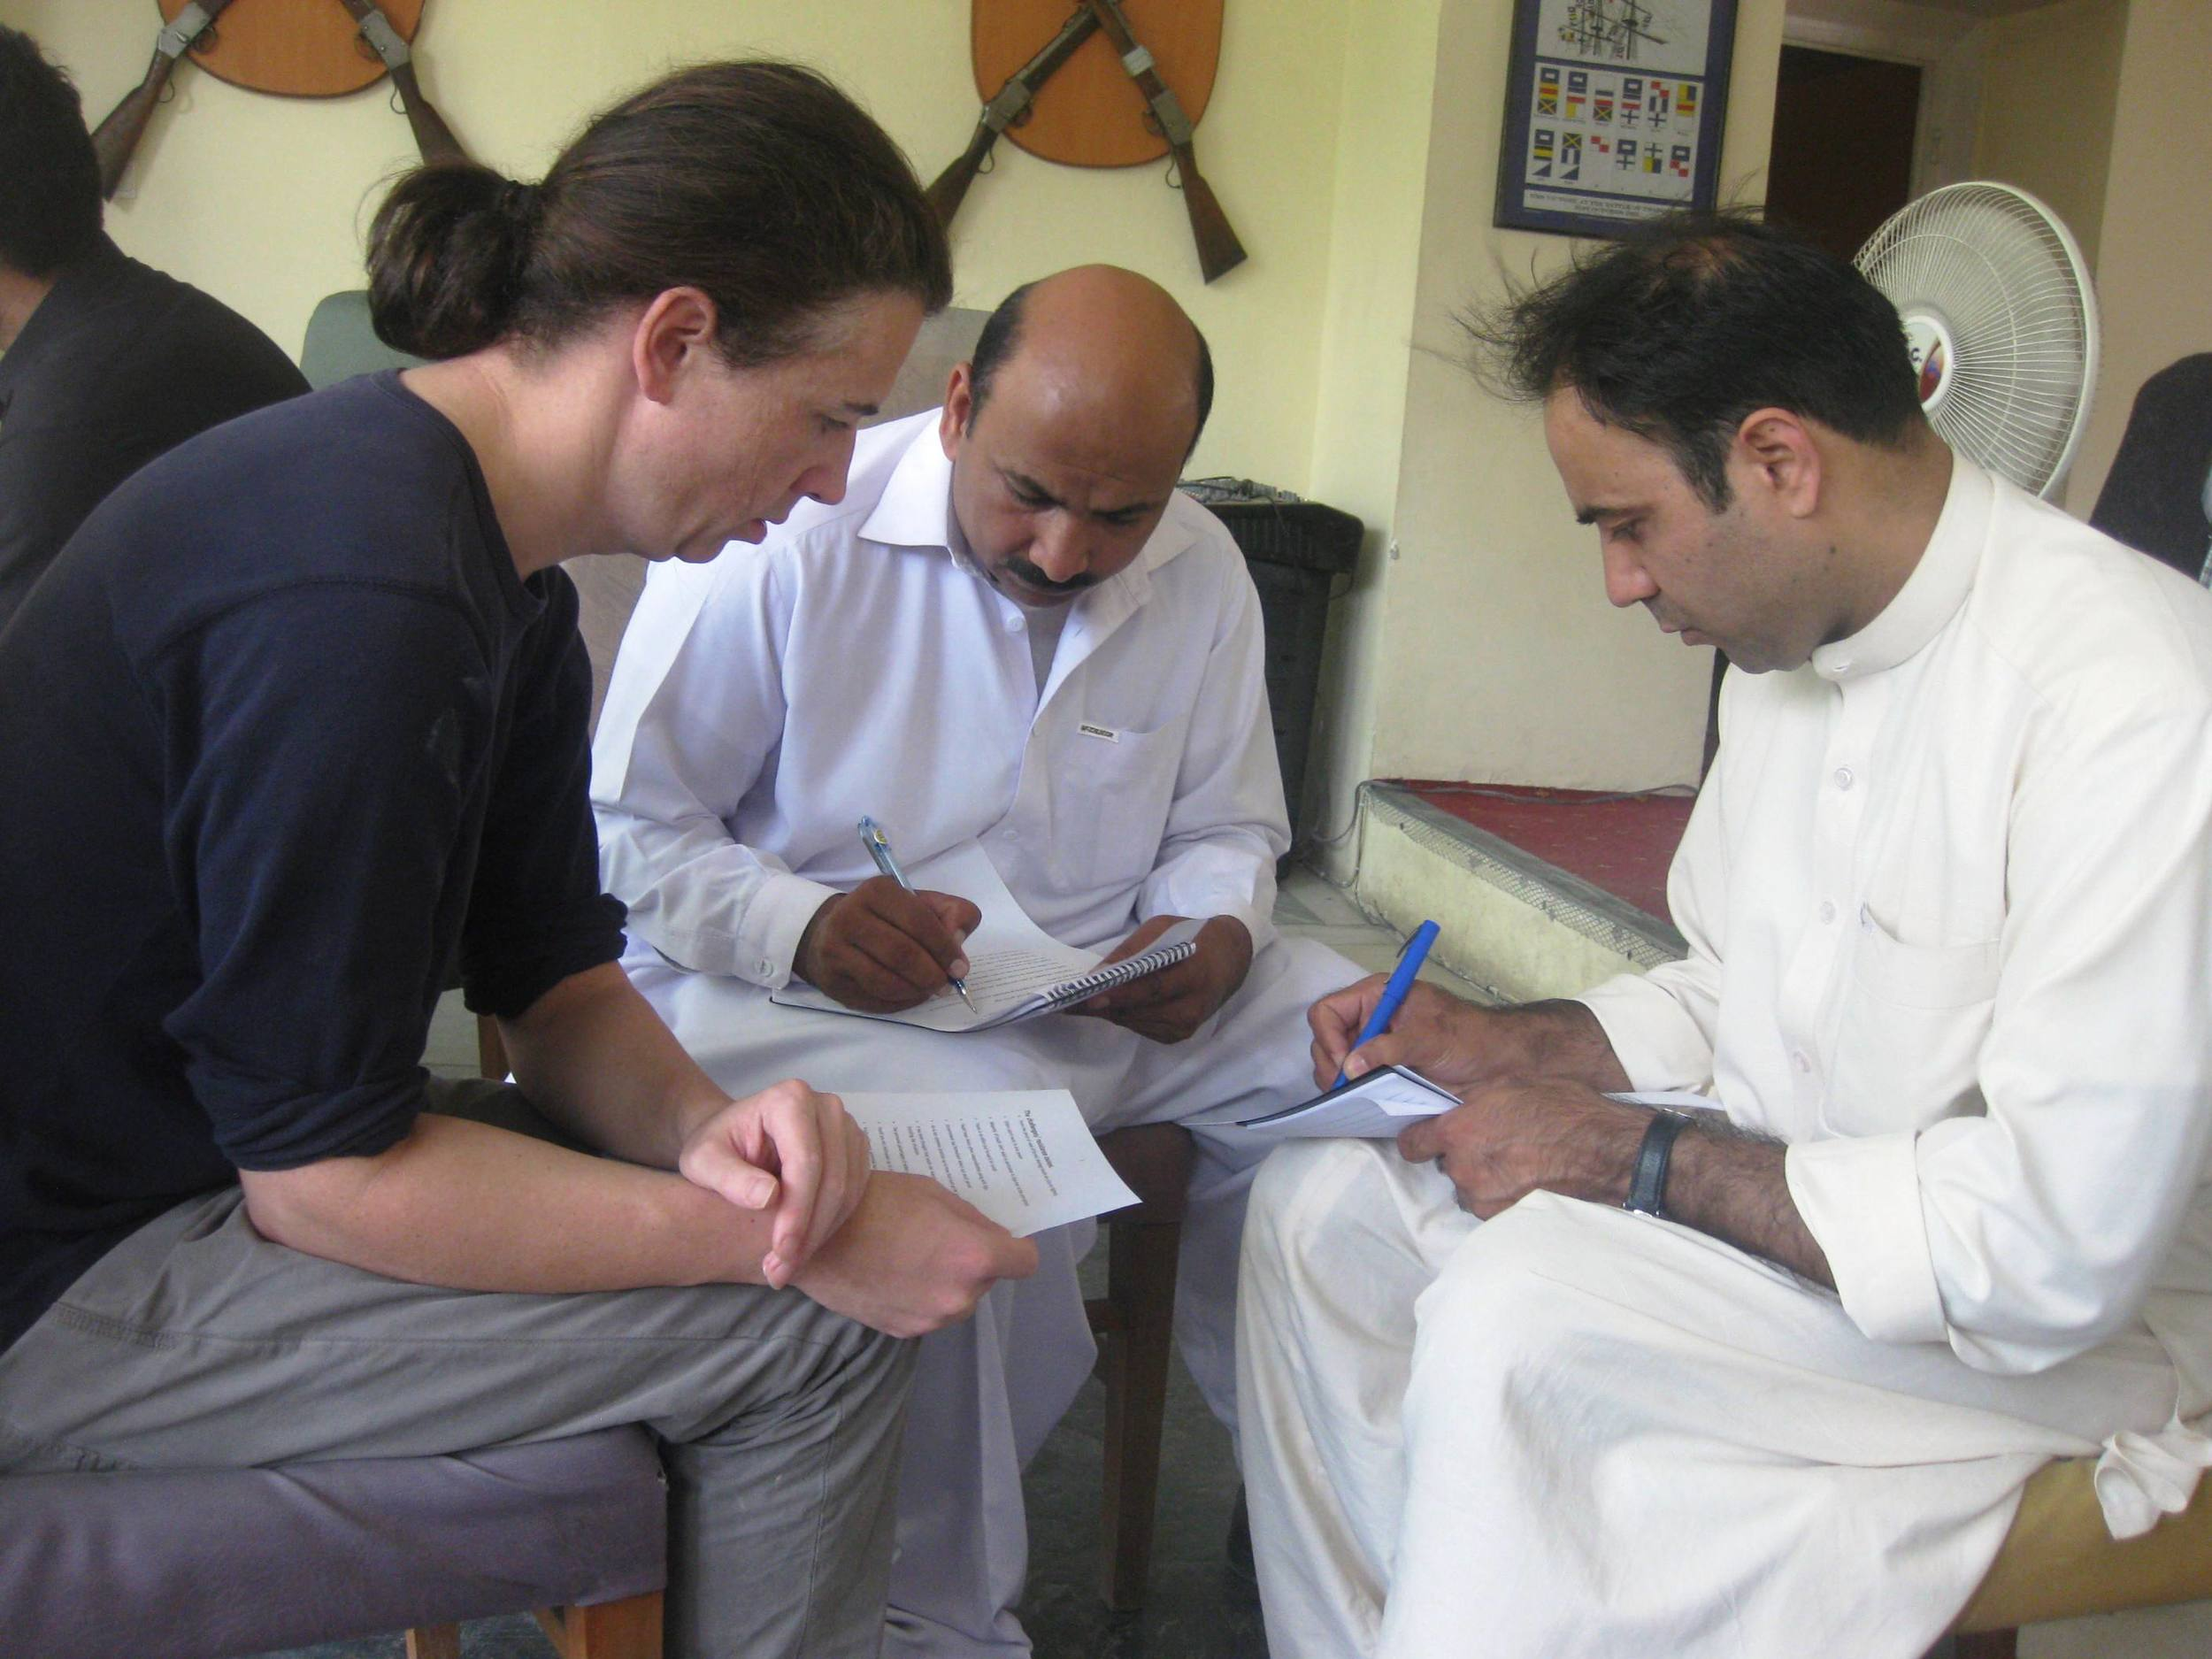 (L-R) Michael, Bashirat, Arman. Working on the issue of youth oppression.